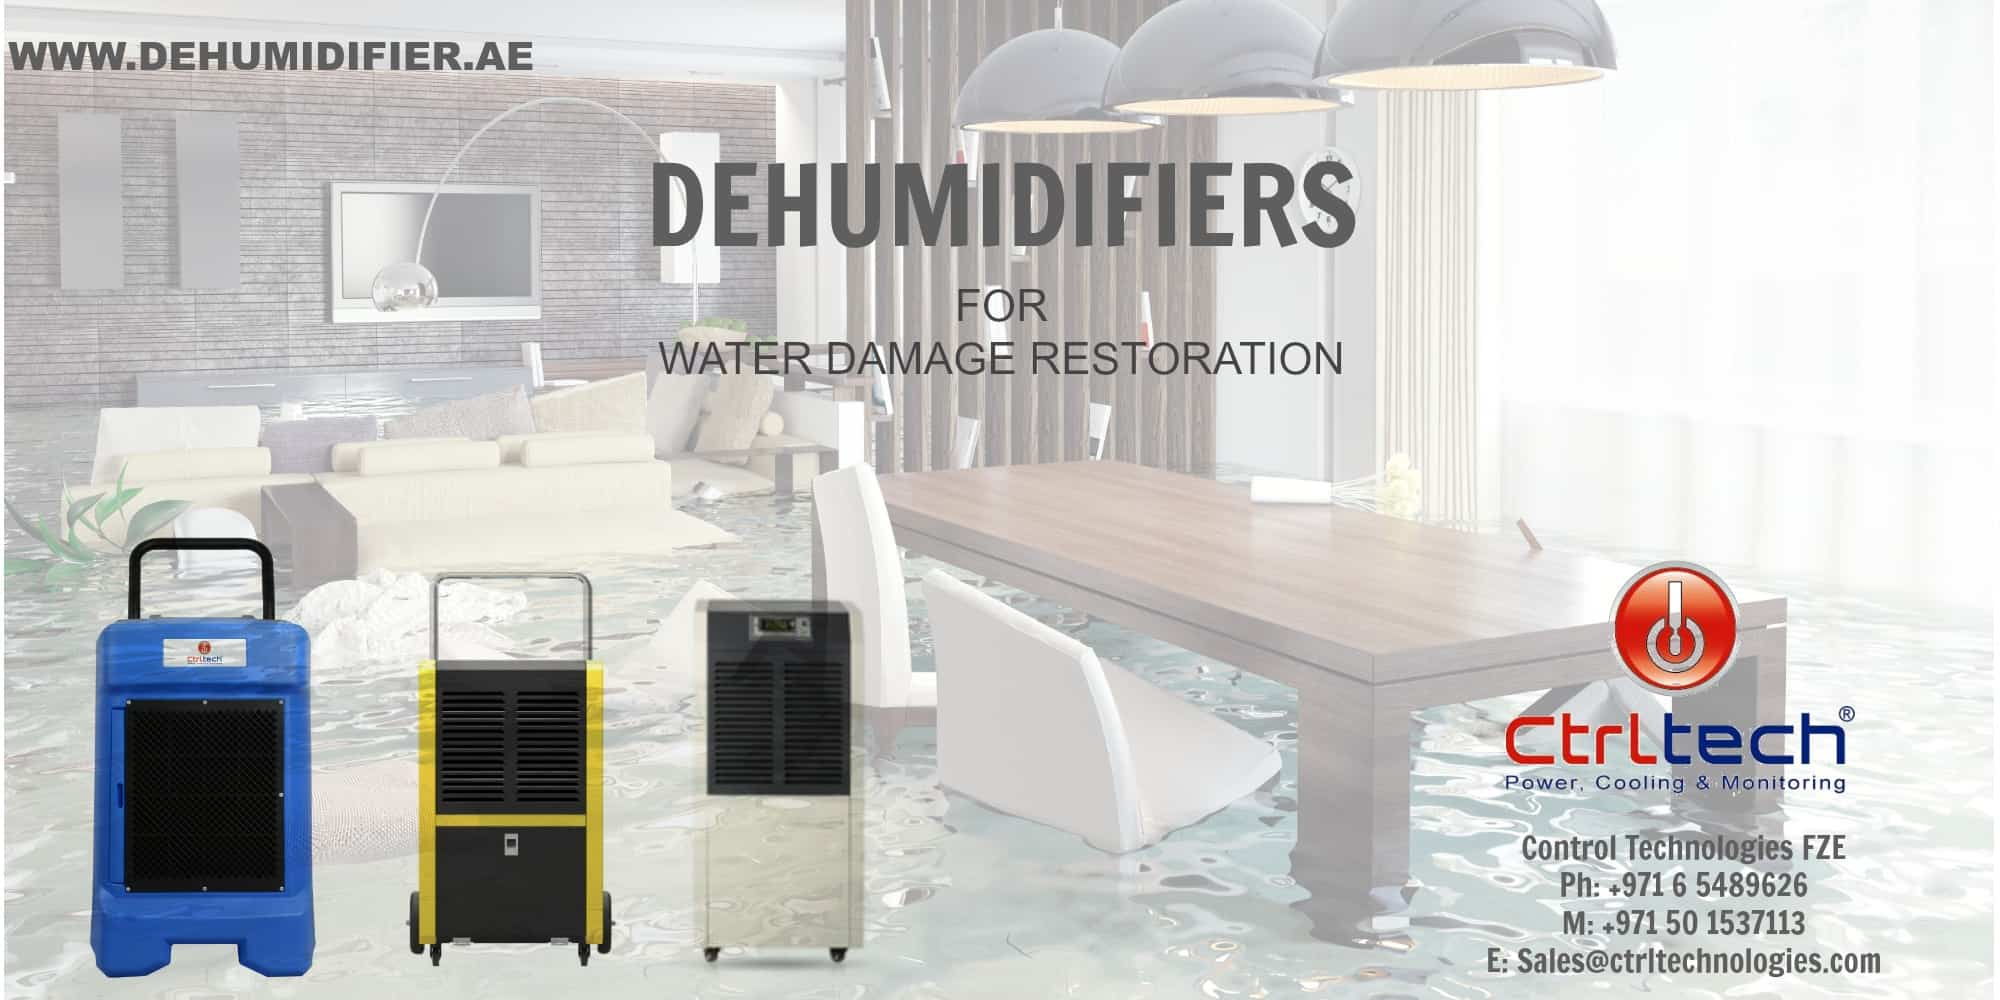 Dehumidifier and air movers for damage restoration.